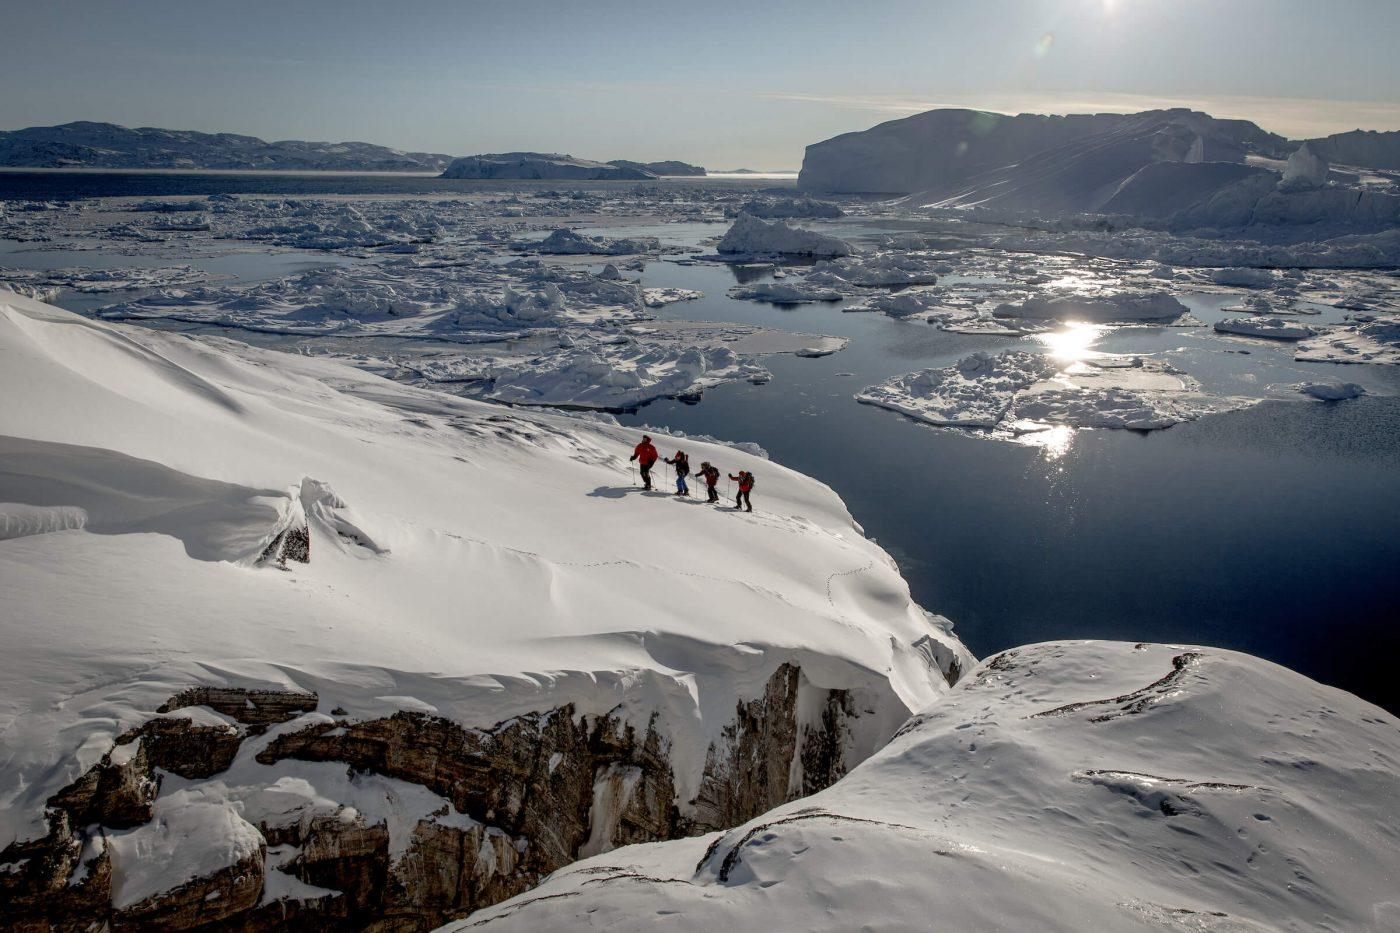 Snowshoeing near Sermermiut on the edge of the Ilulissat ice fjord in Greenland. By Mads Pihl